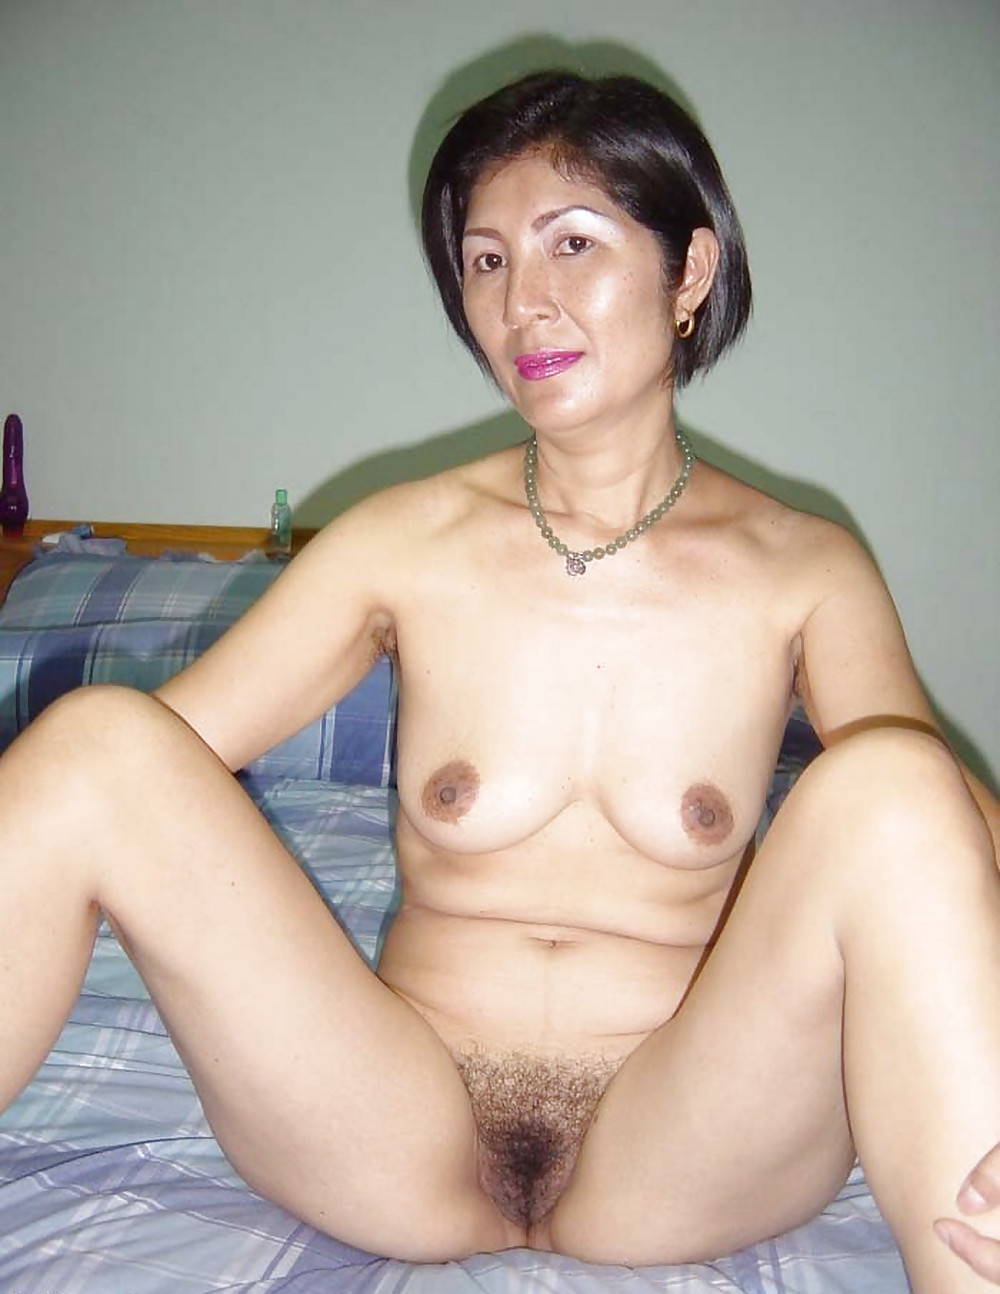 mature-asian-nursetures-sexy-breast-nude-american